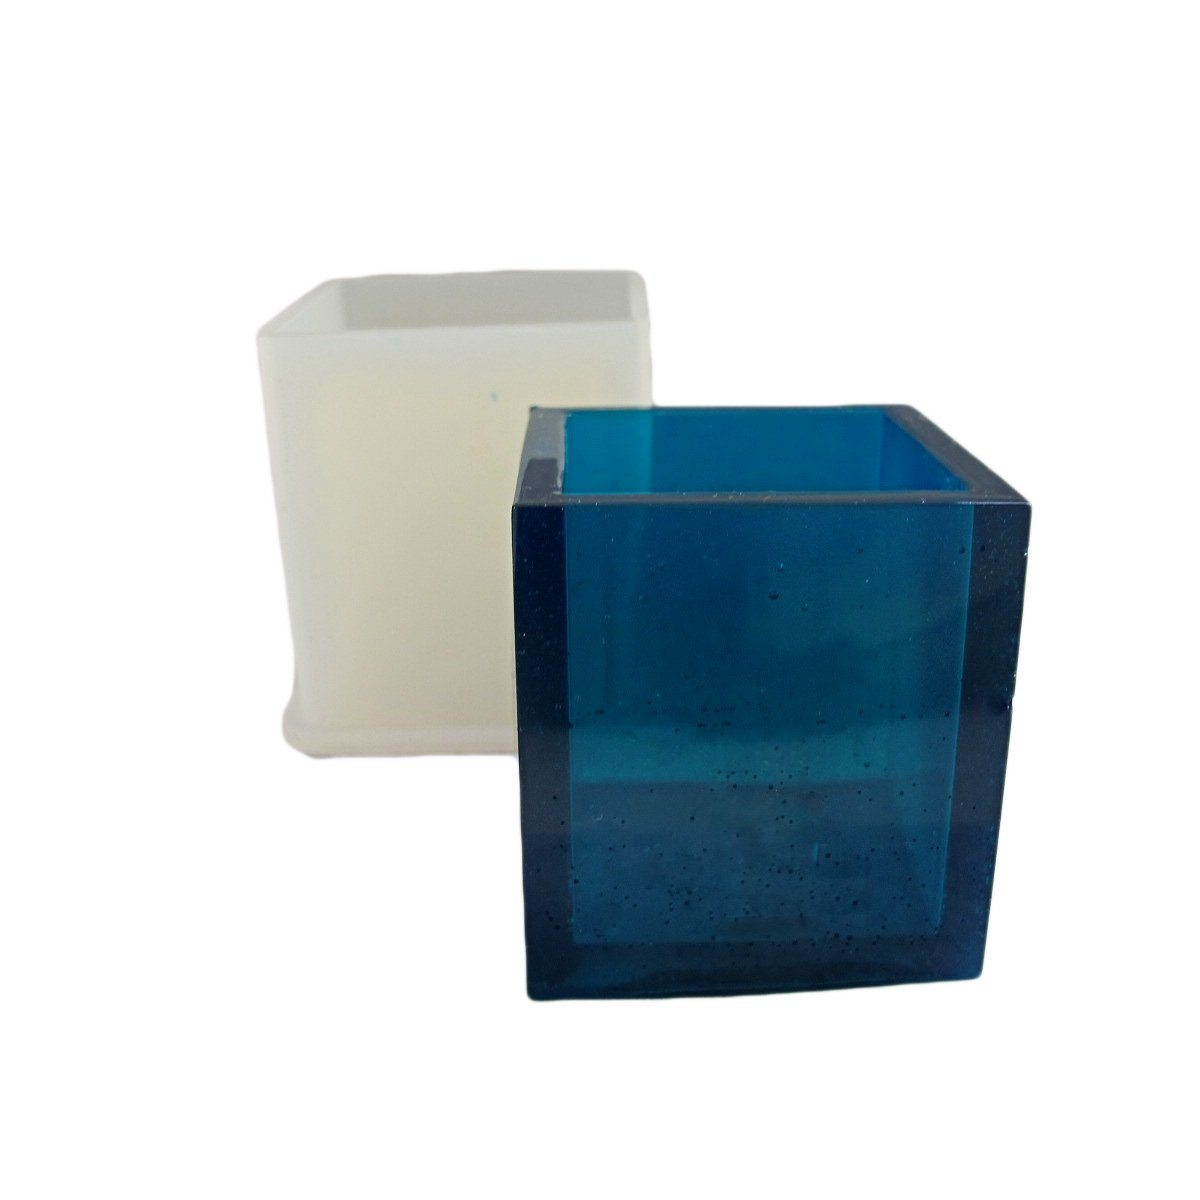 Clear silicone square vase mold